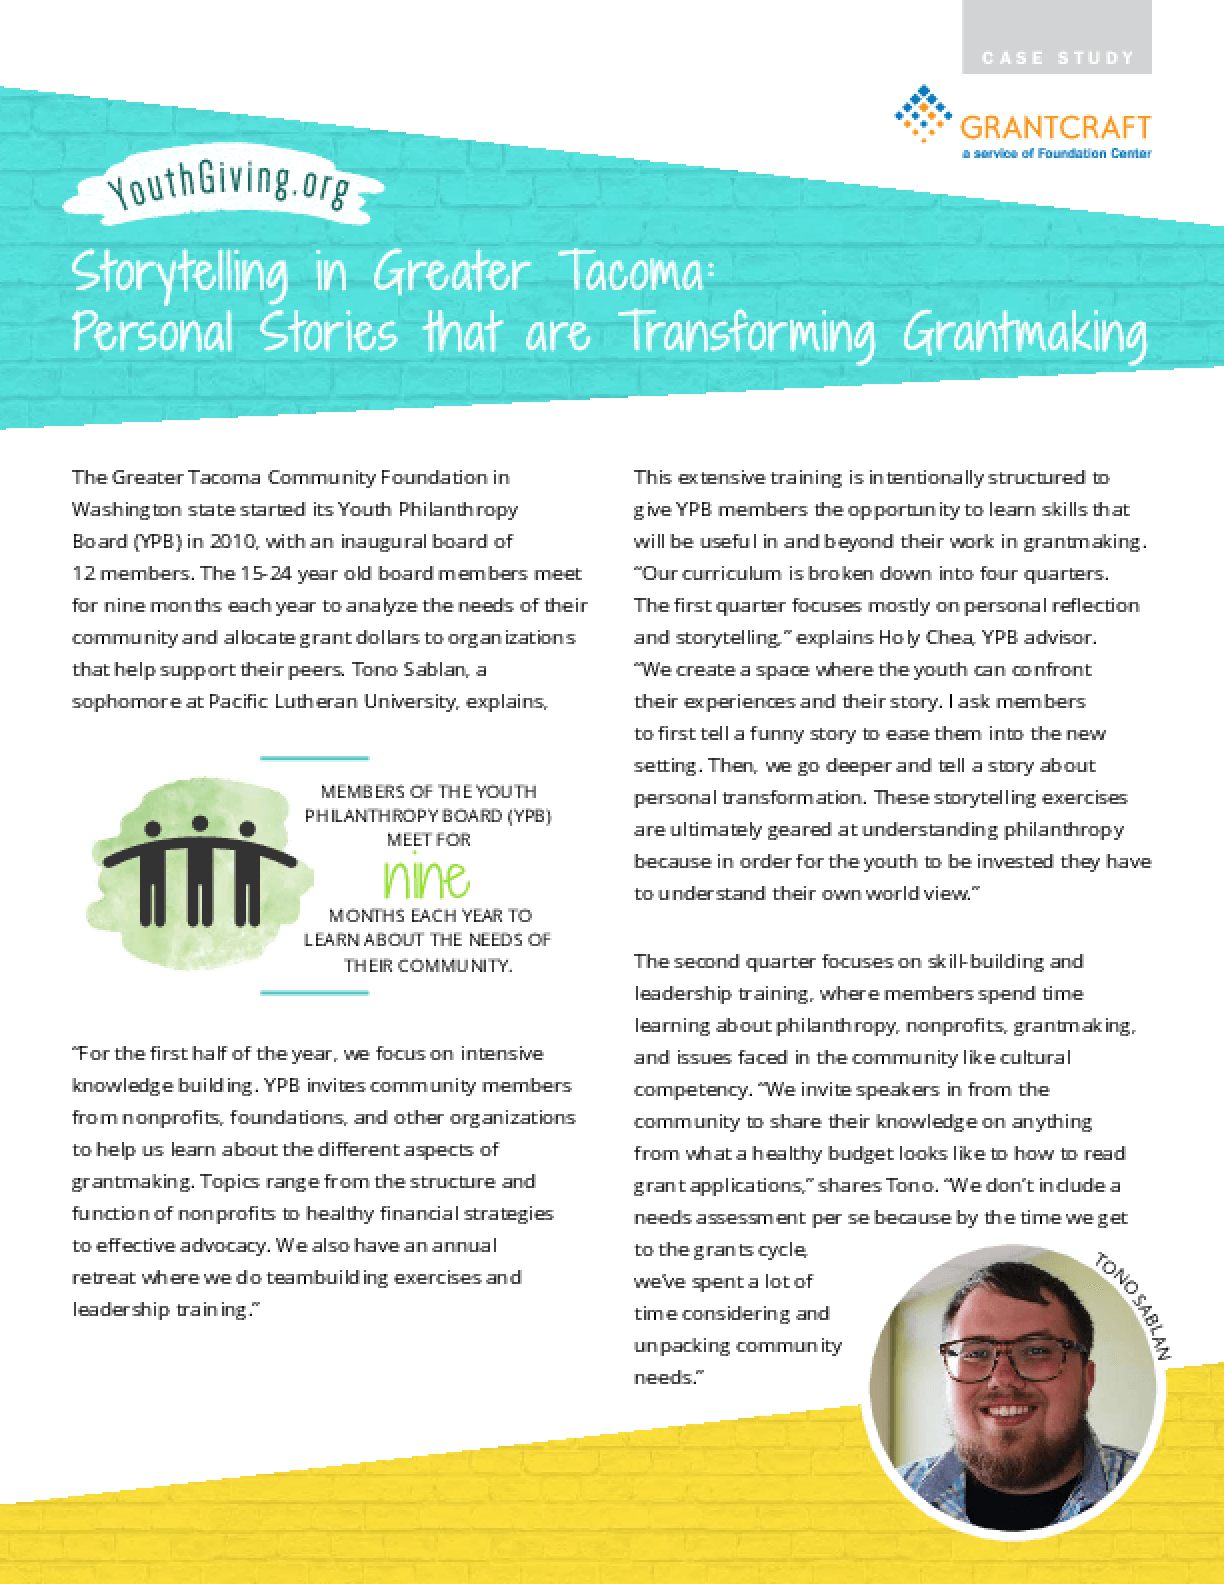 Storytelling in Greater Tacoma: Personal Stories that are Transforming Grantmaking